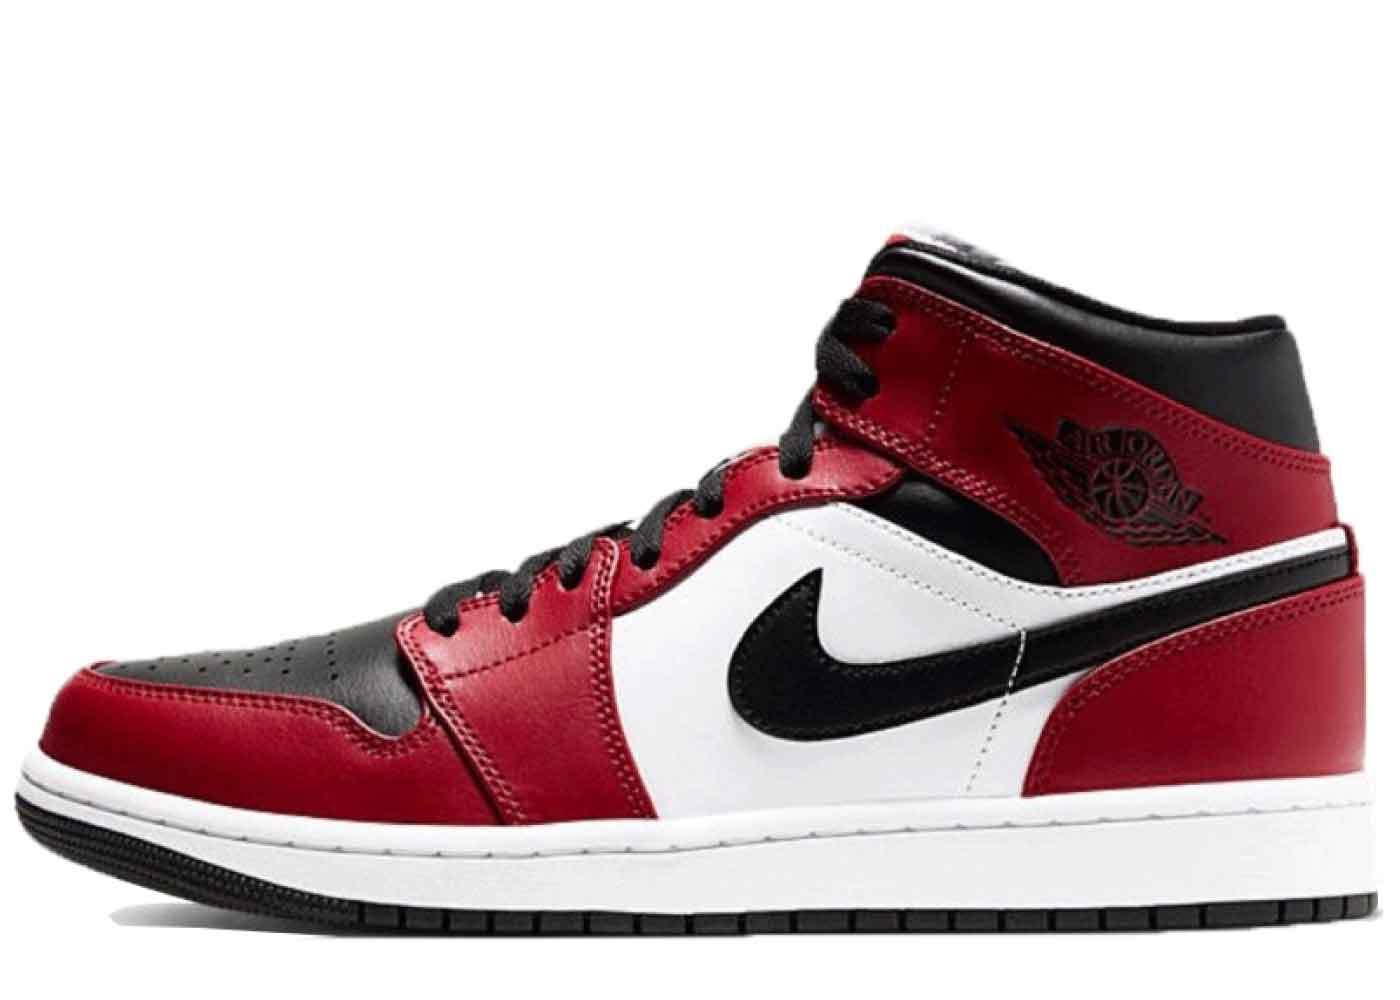 Nike Air Jordan 1 Mid Chicago Black Toeの写真